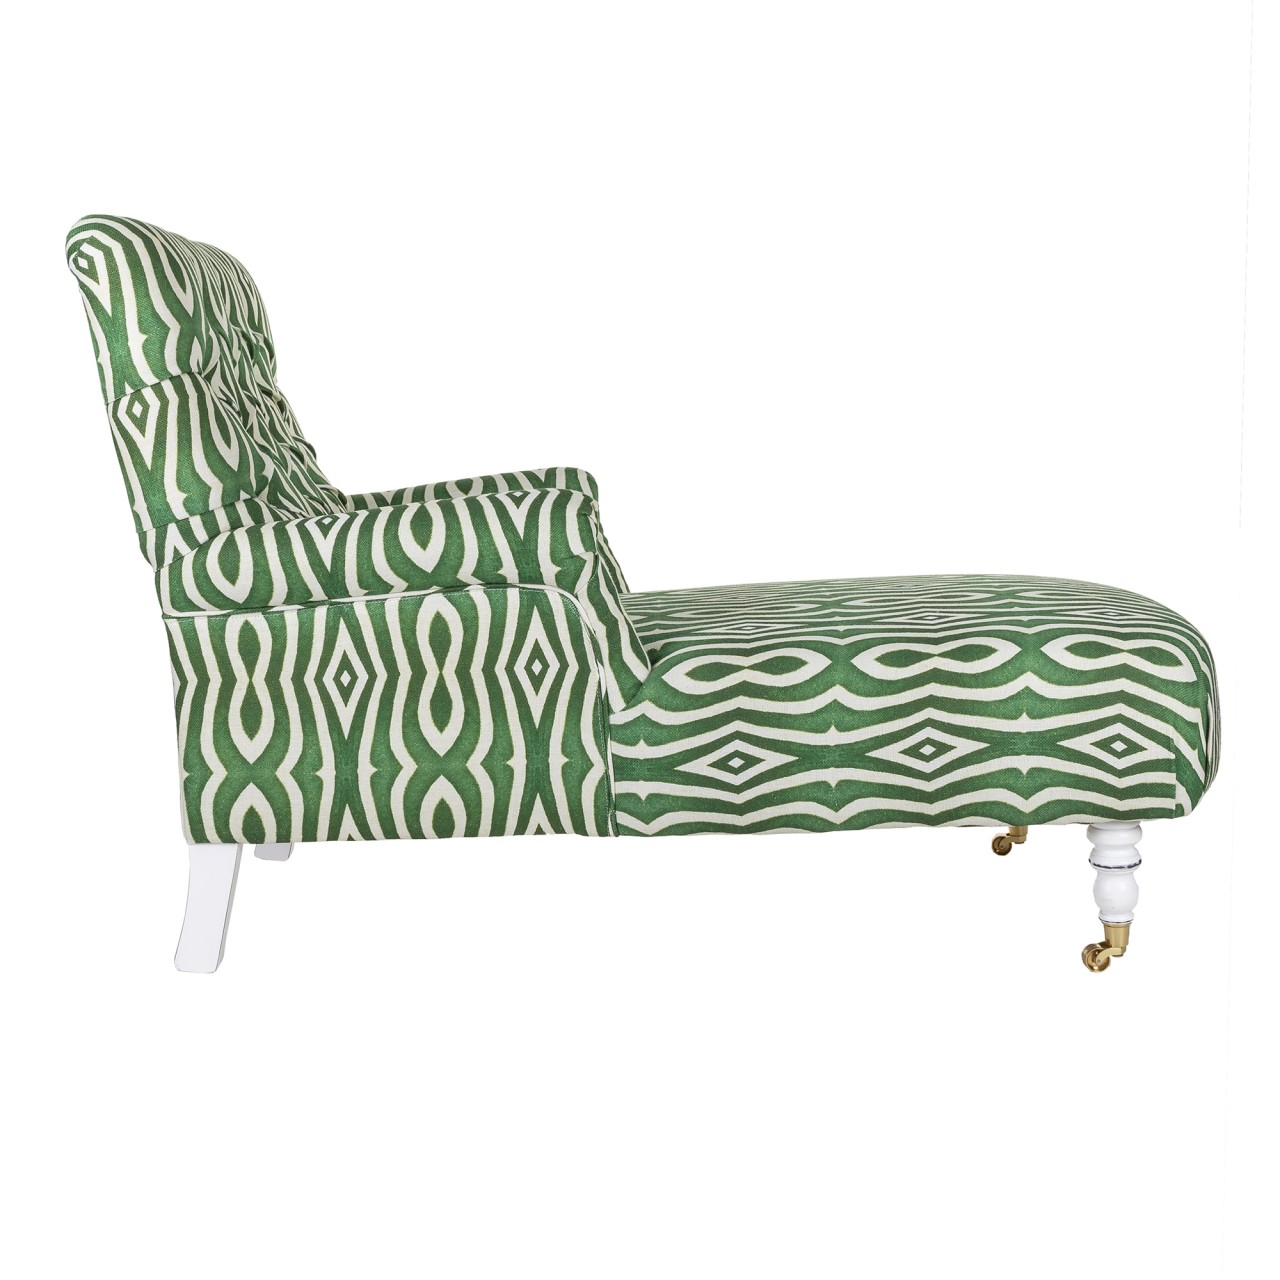 MADISON CHAISE - RIVERSIDE Linen